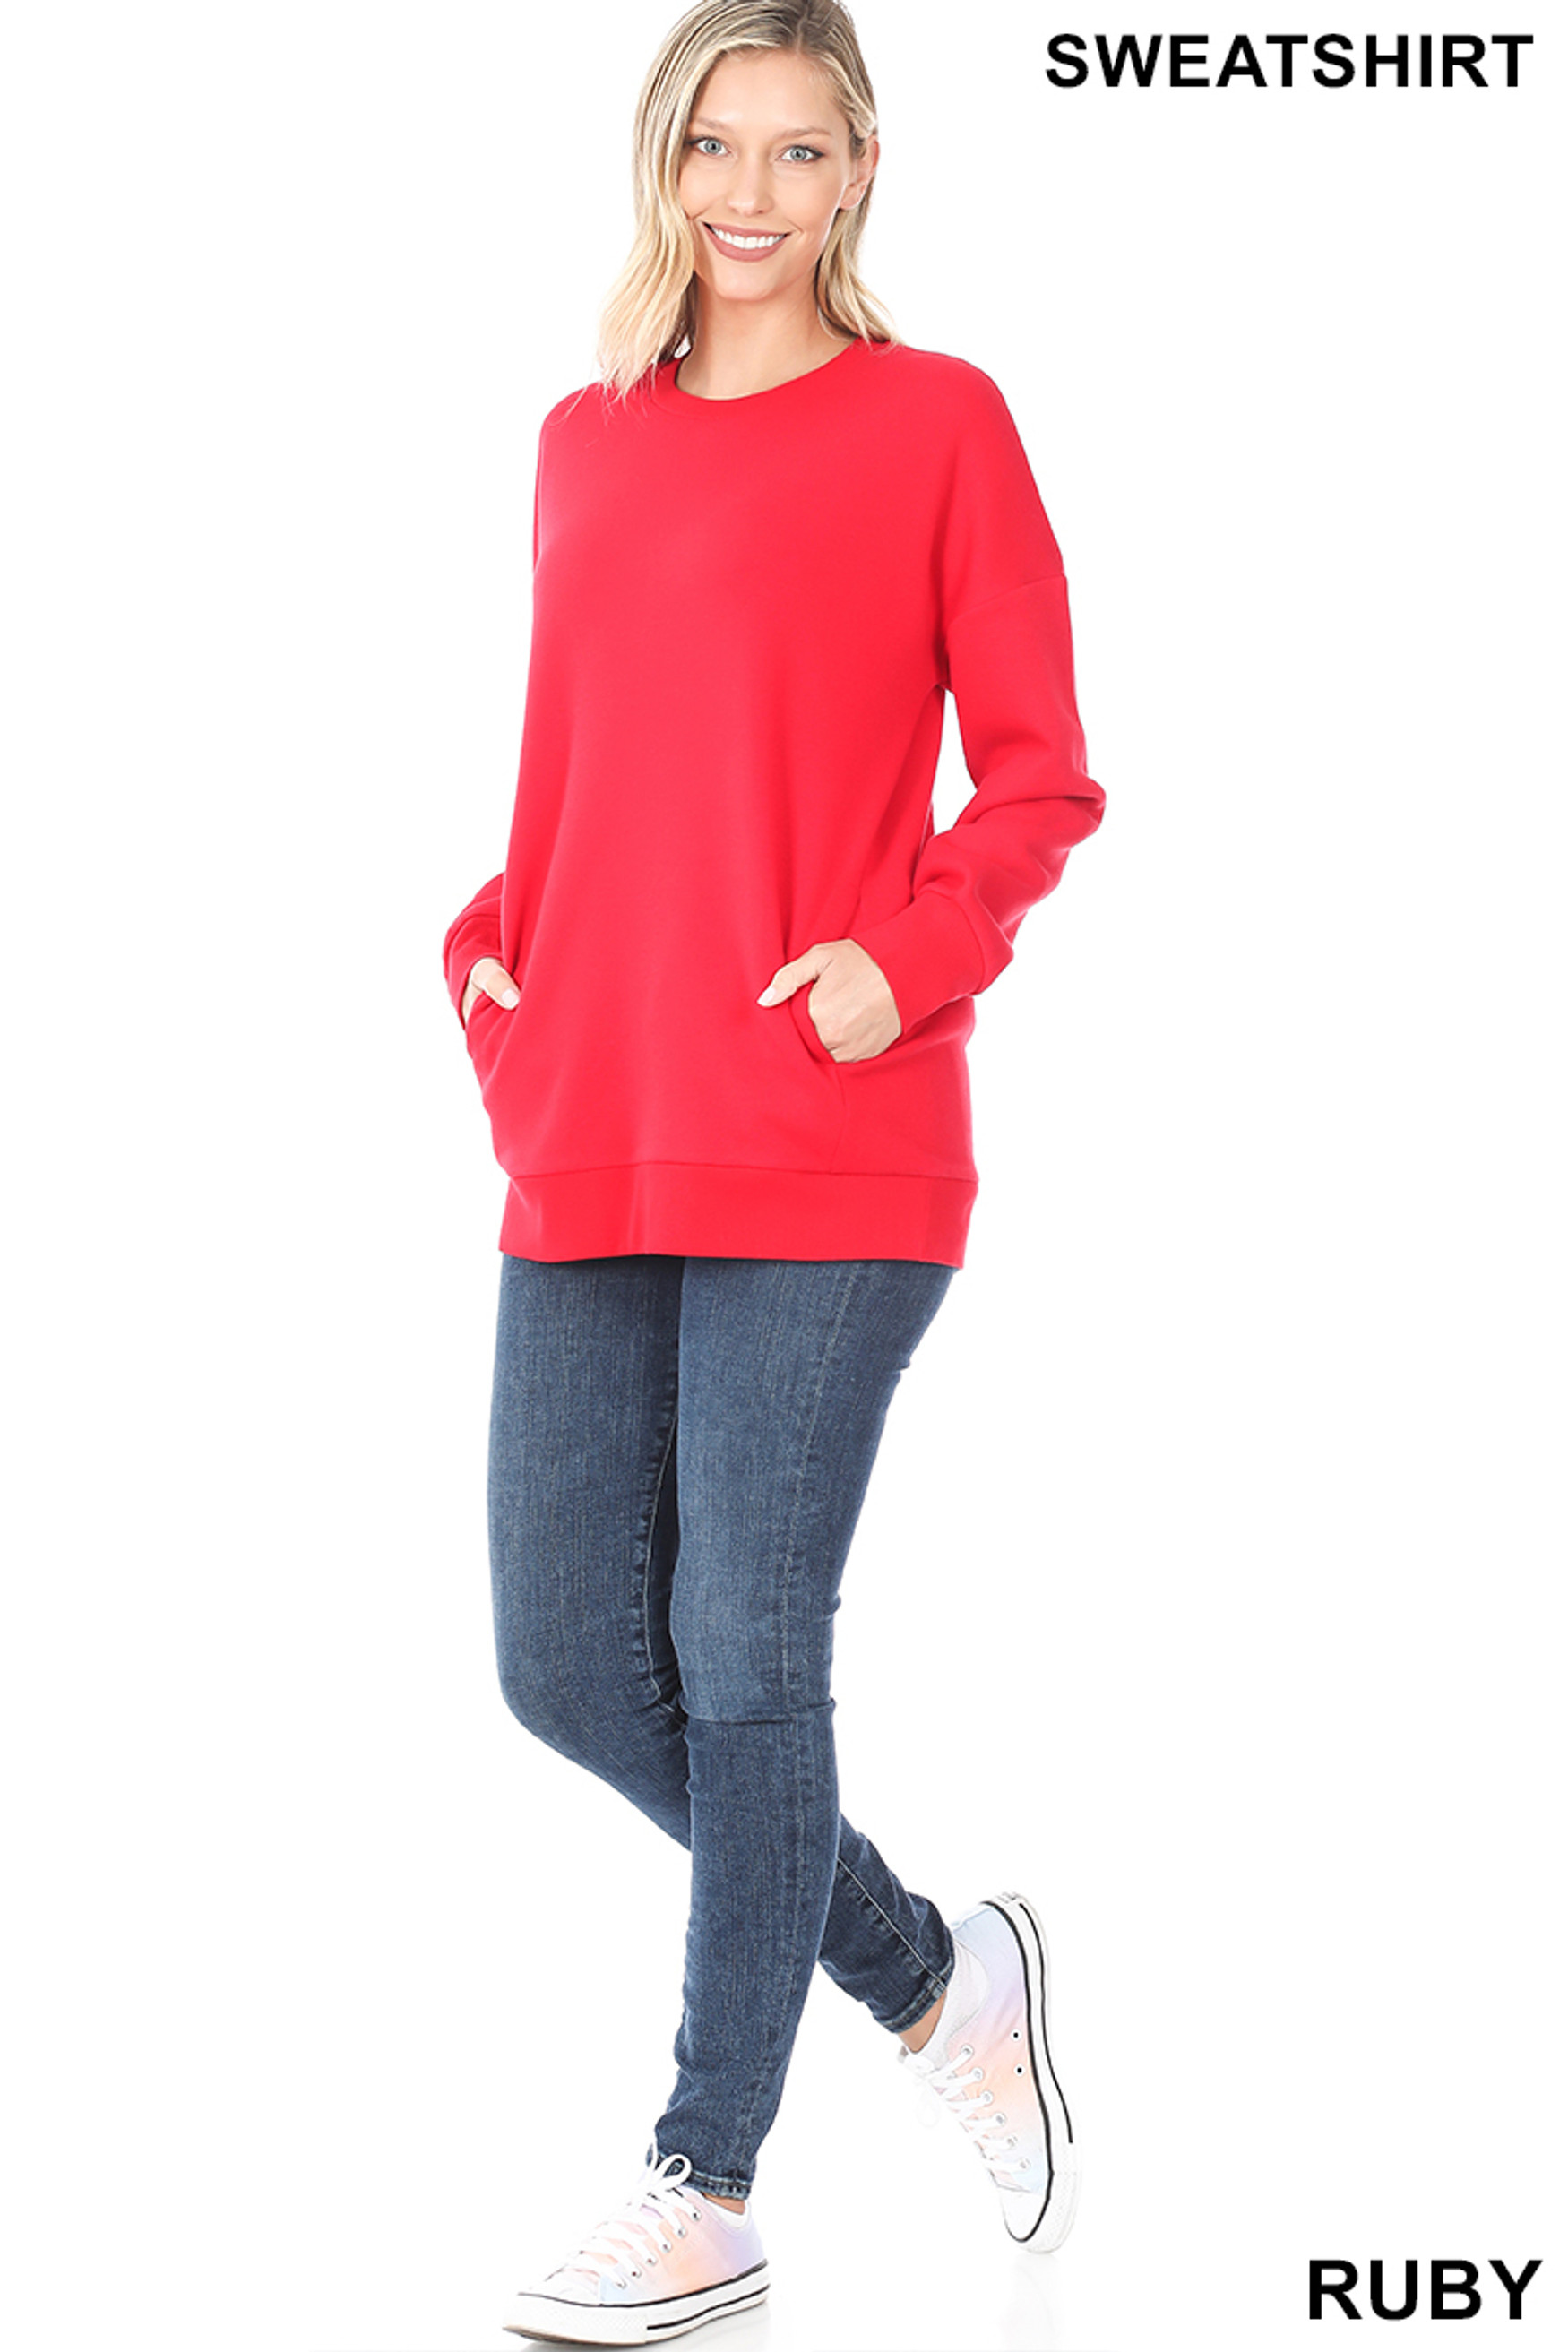 Full body image of Ruby Round Crew Neck Sweatshirt with Side Pockets